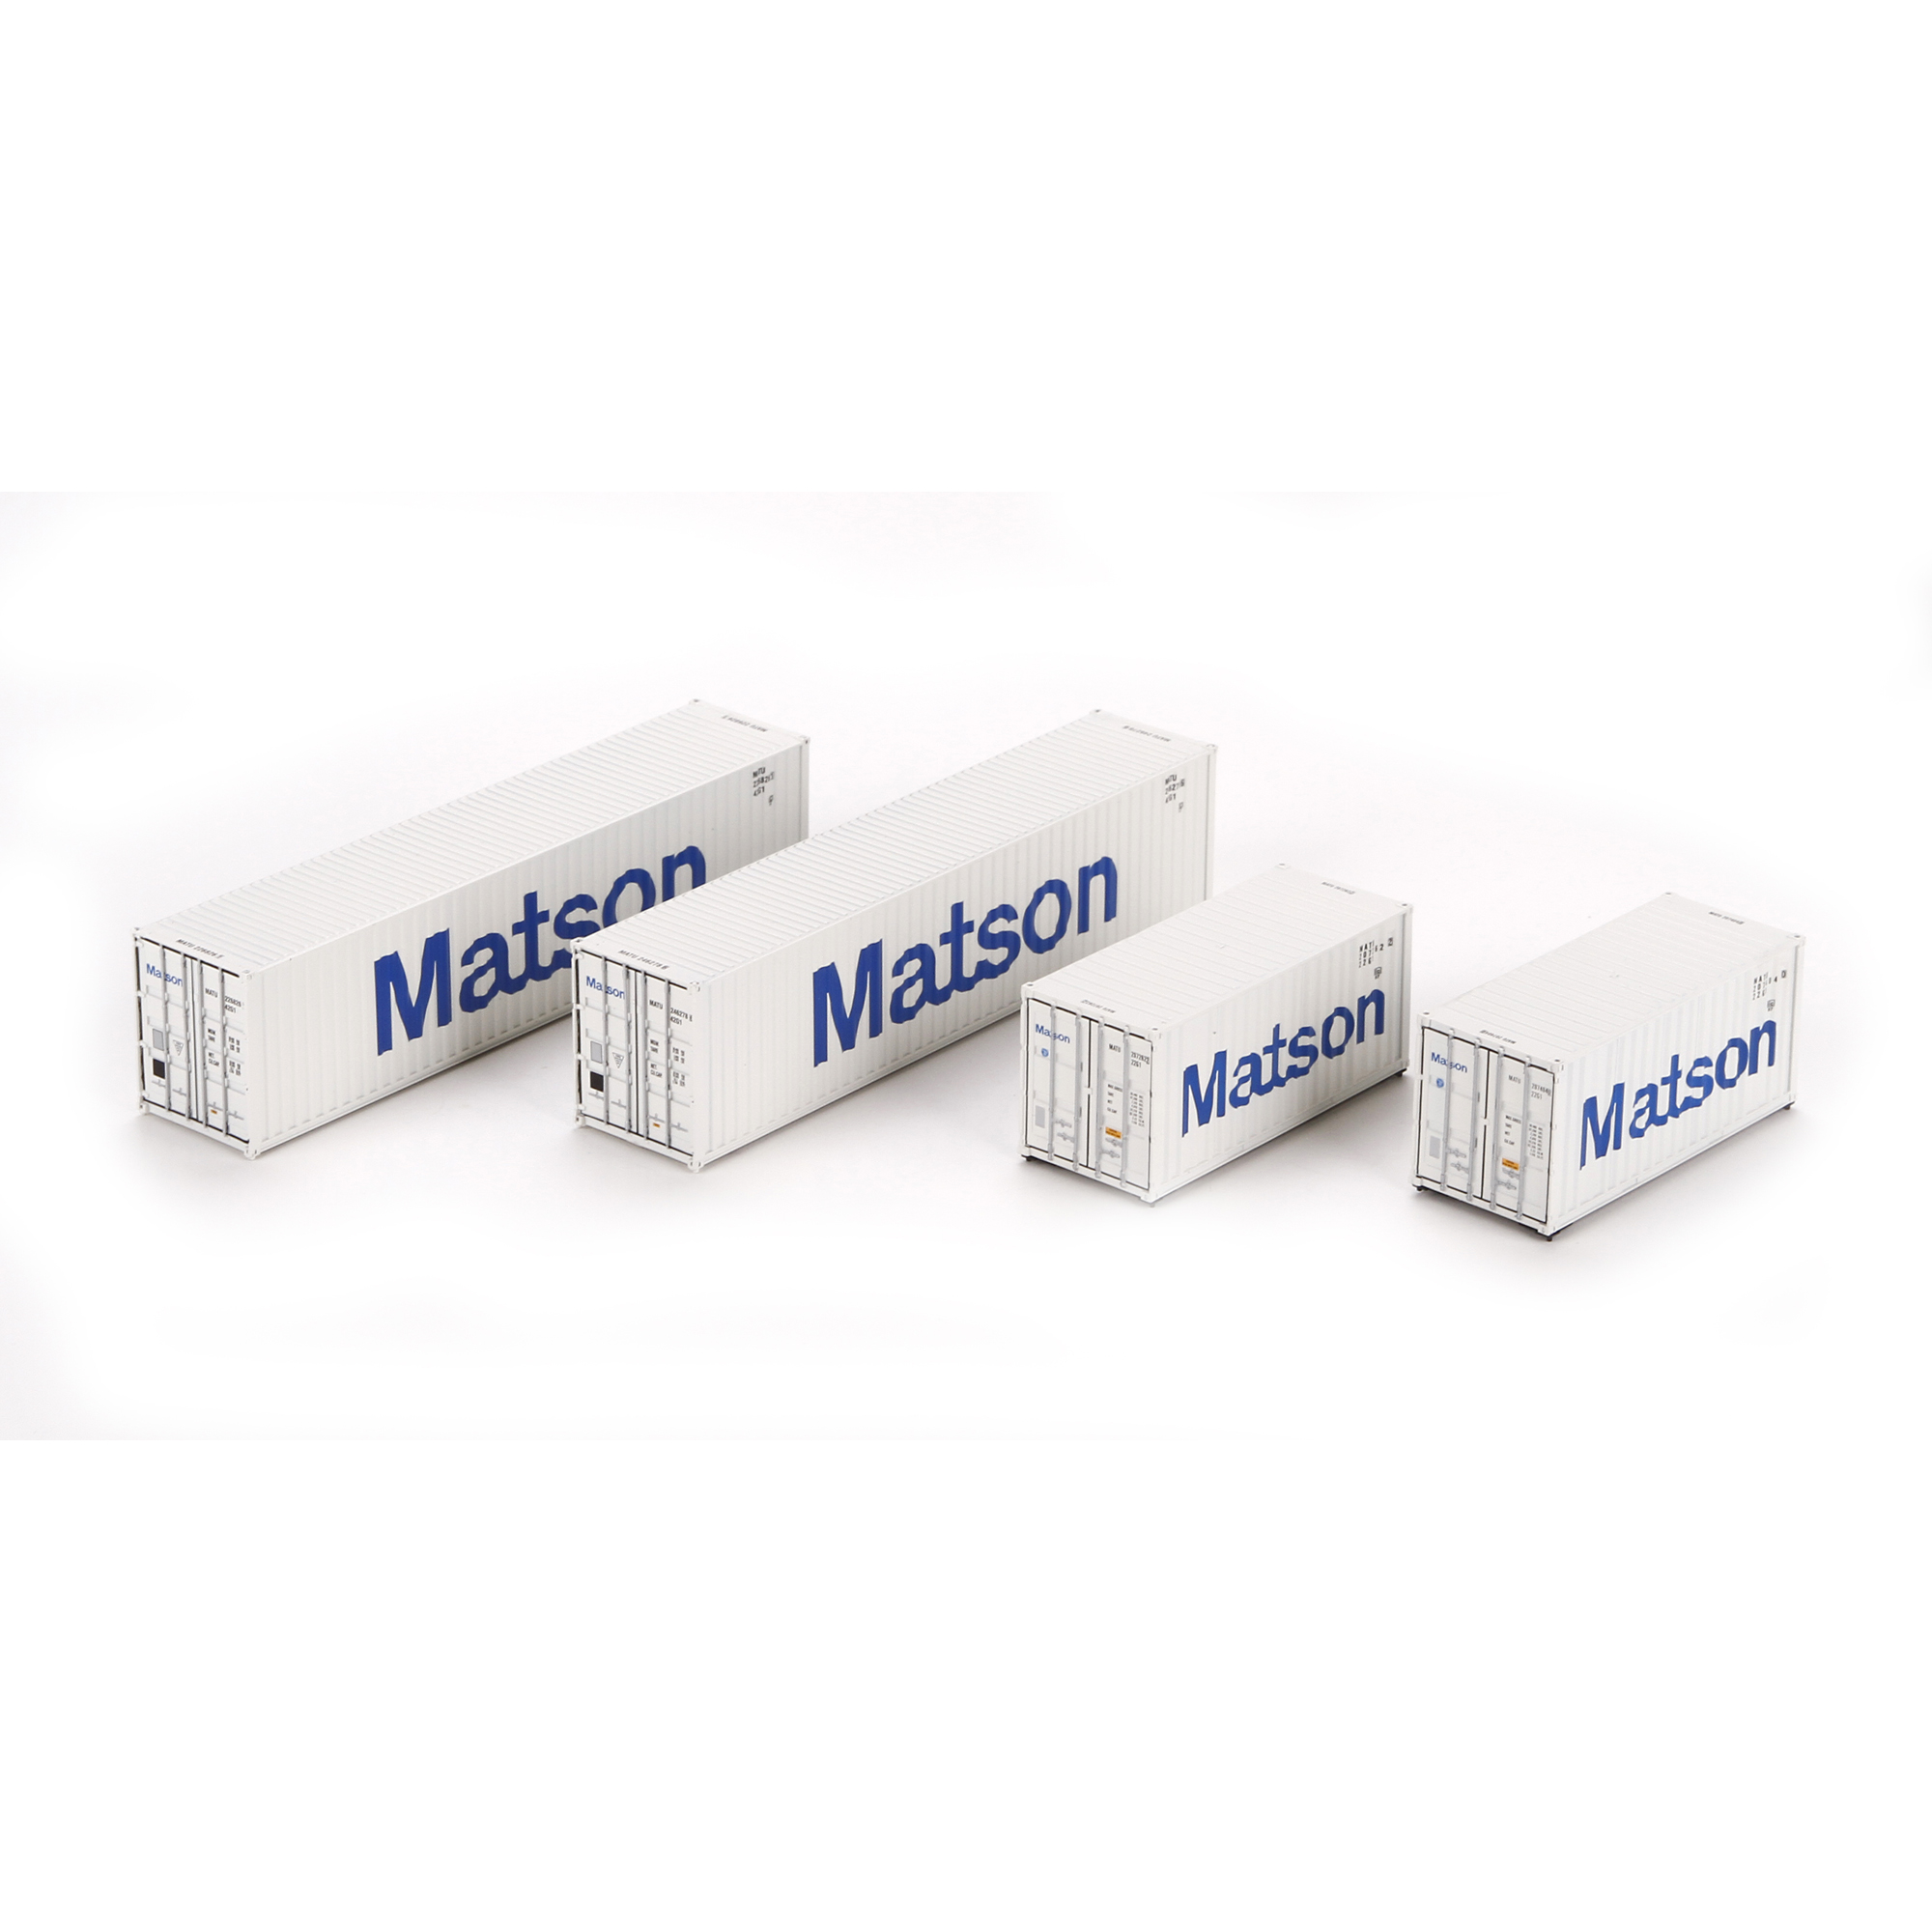 Ho rtr 20 39 40 39 containers matson 1 4 ath27942 athearn trains - Matson container homes ...